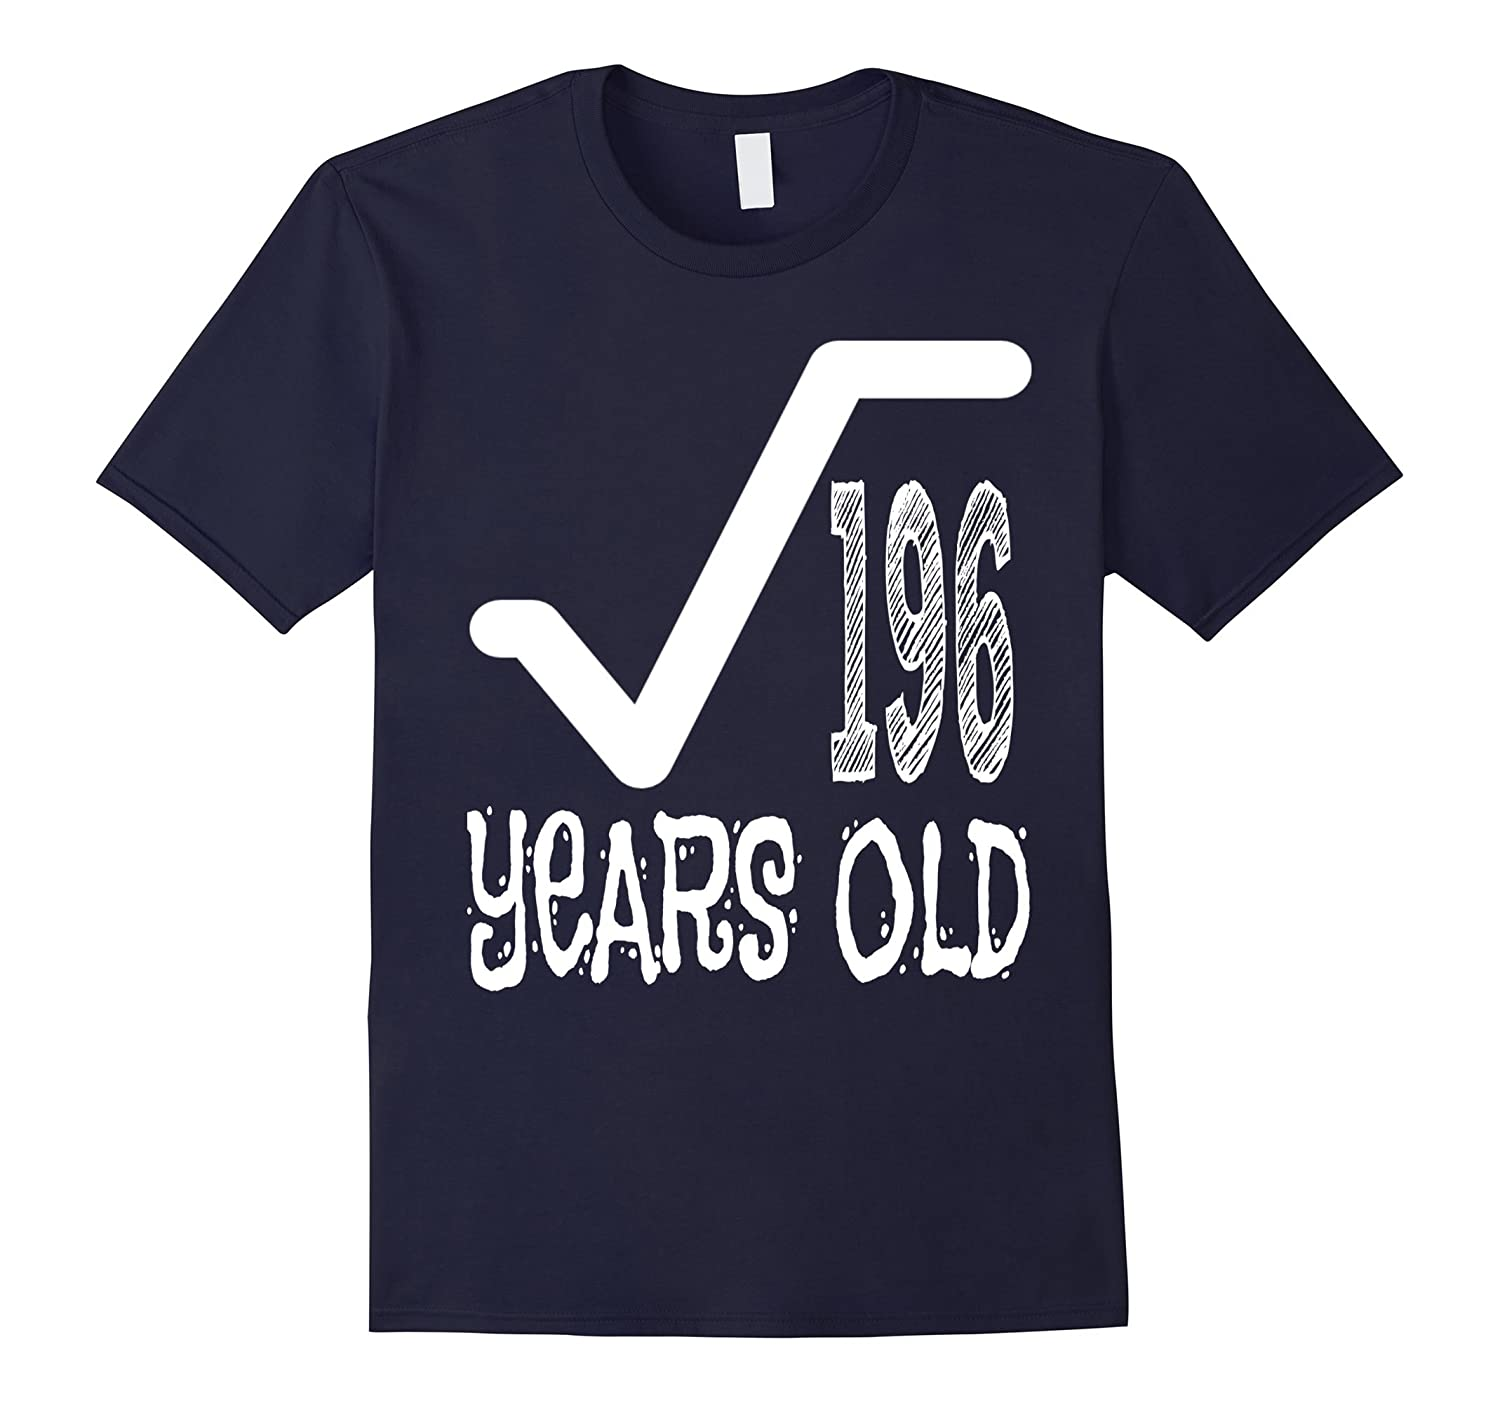 14 Year Old 14th Birthday Boy Girl Gift Dude Novelty T-Shirt-TJ